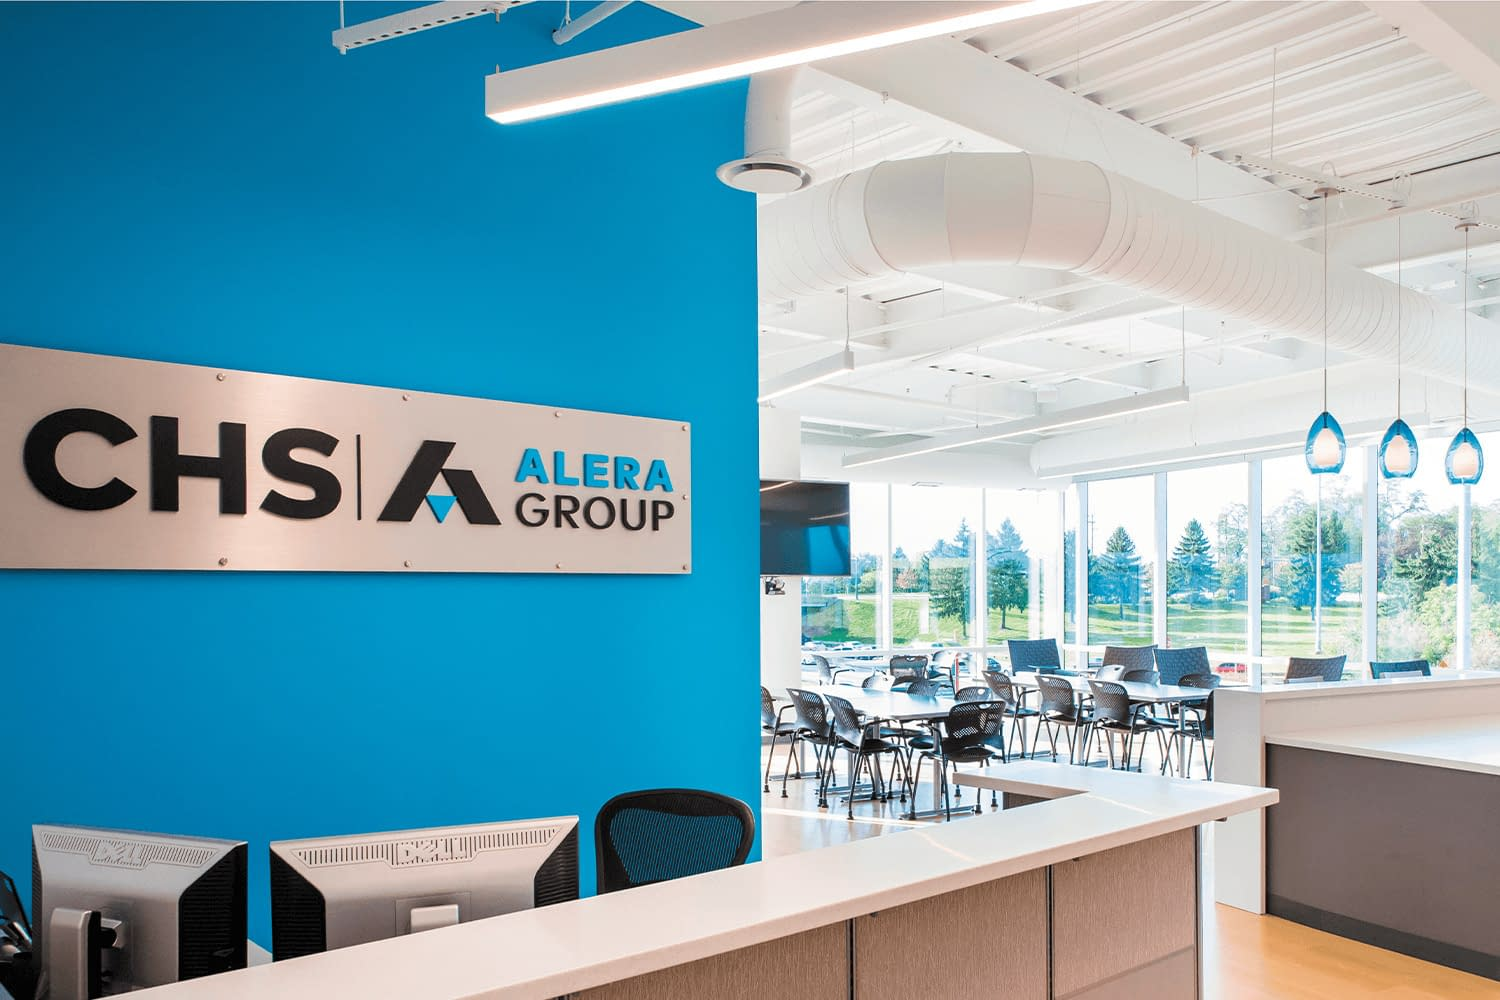 concierge/front desk with CHS Alera sign behind it on a vibrant blue wall